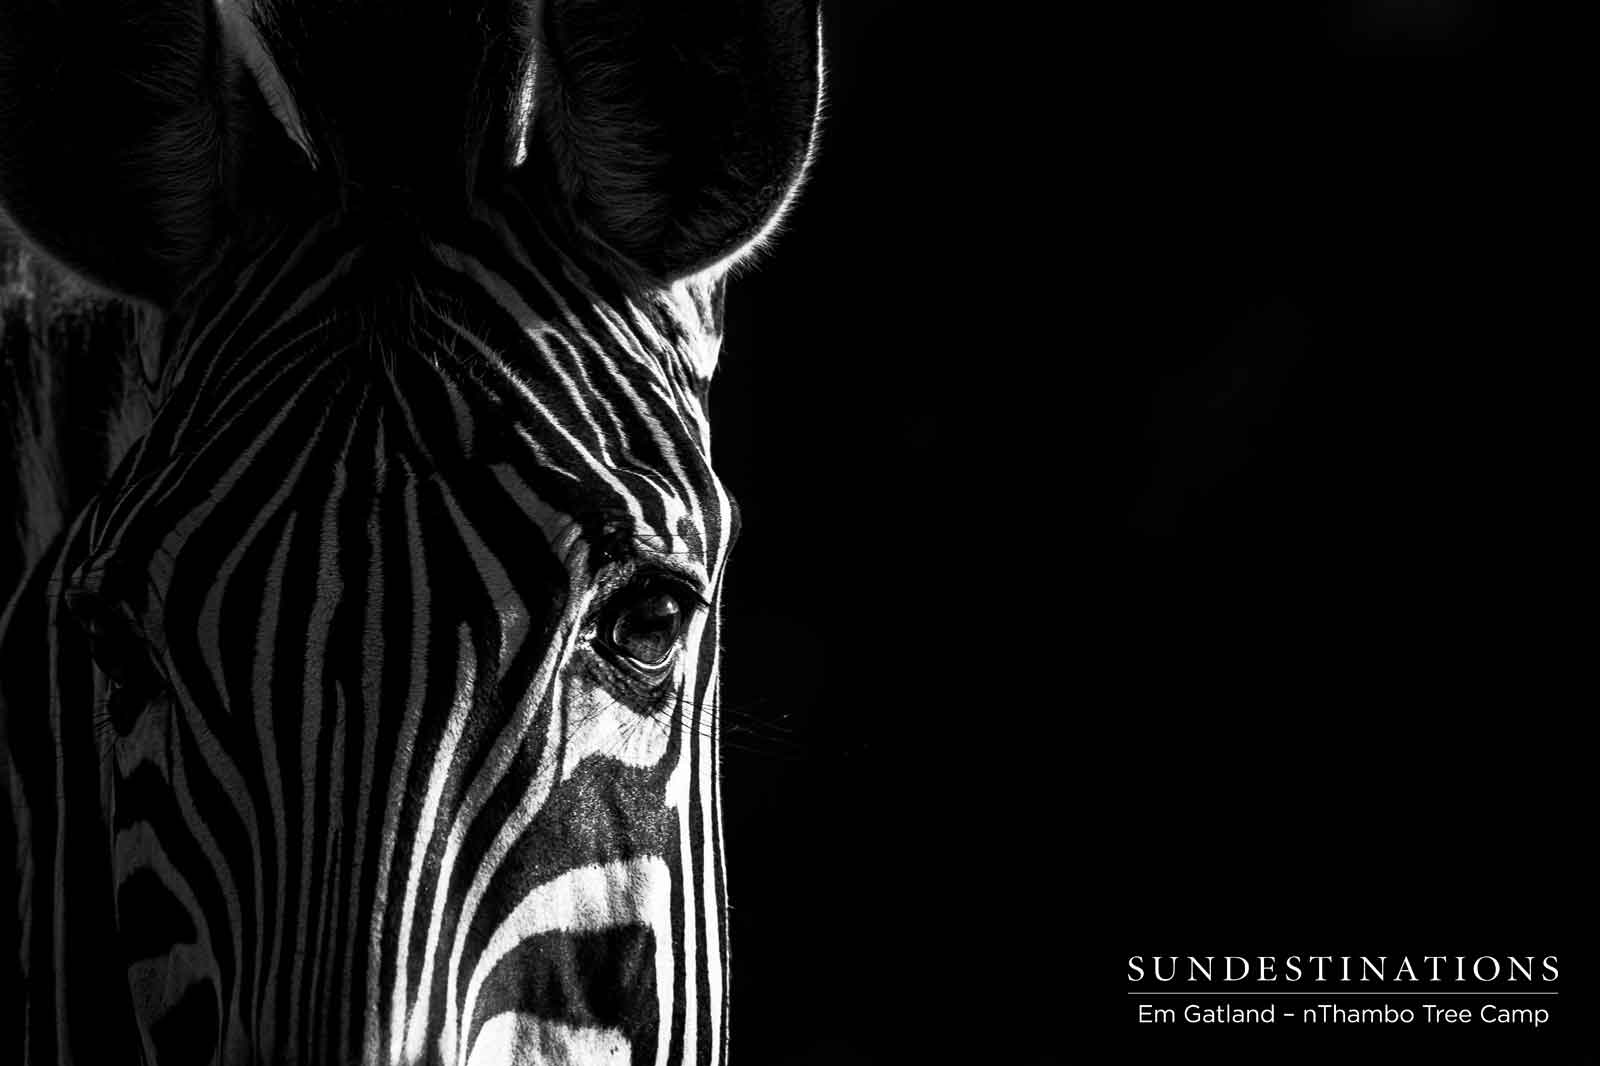 Zebras at nthambo Tree Camp